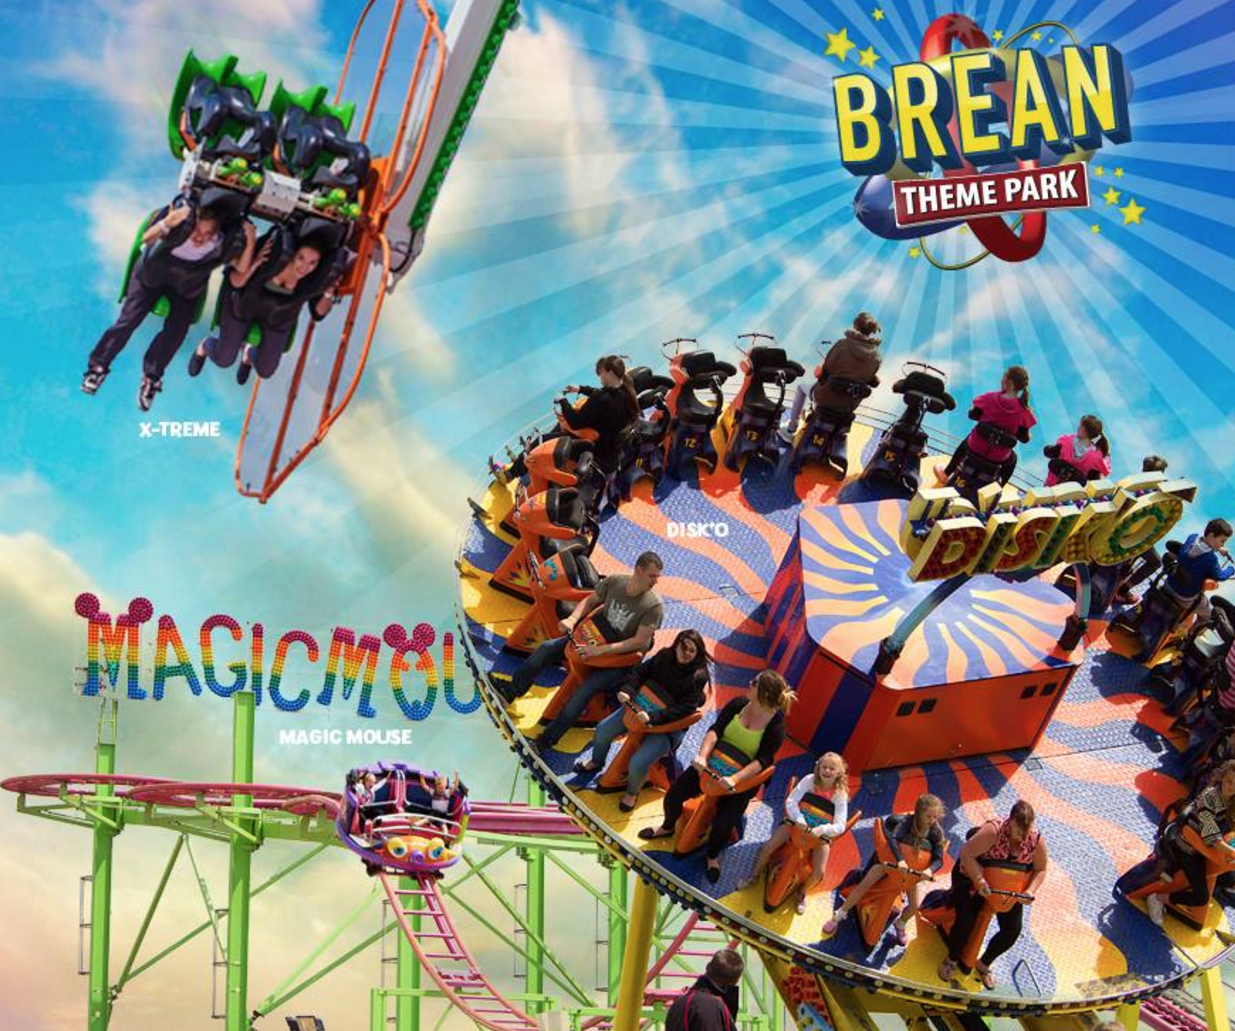 Brean Leisure Park - YourDaysOut